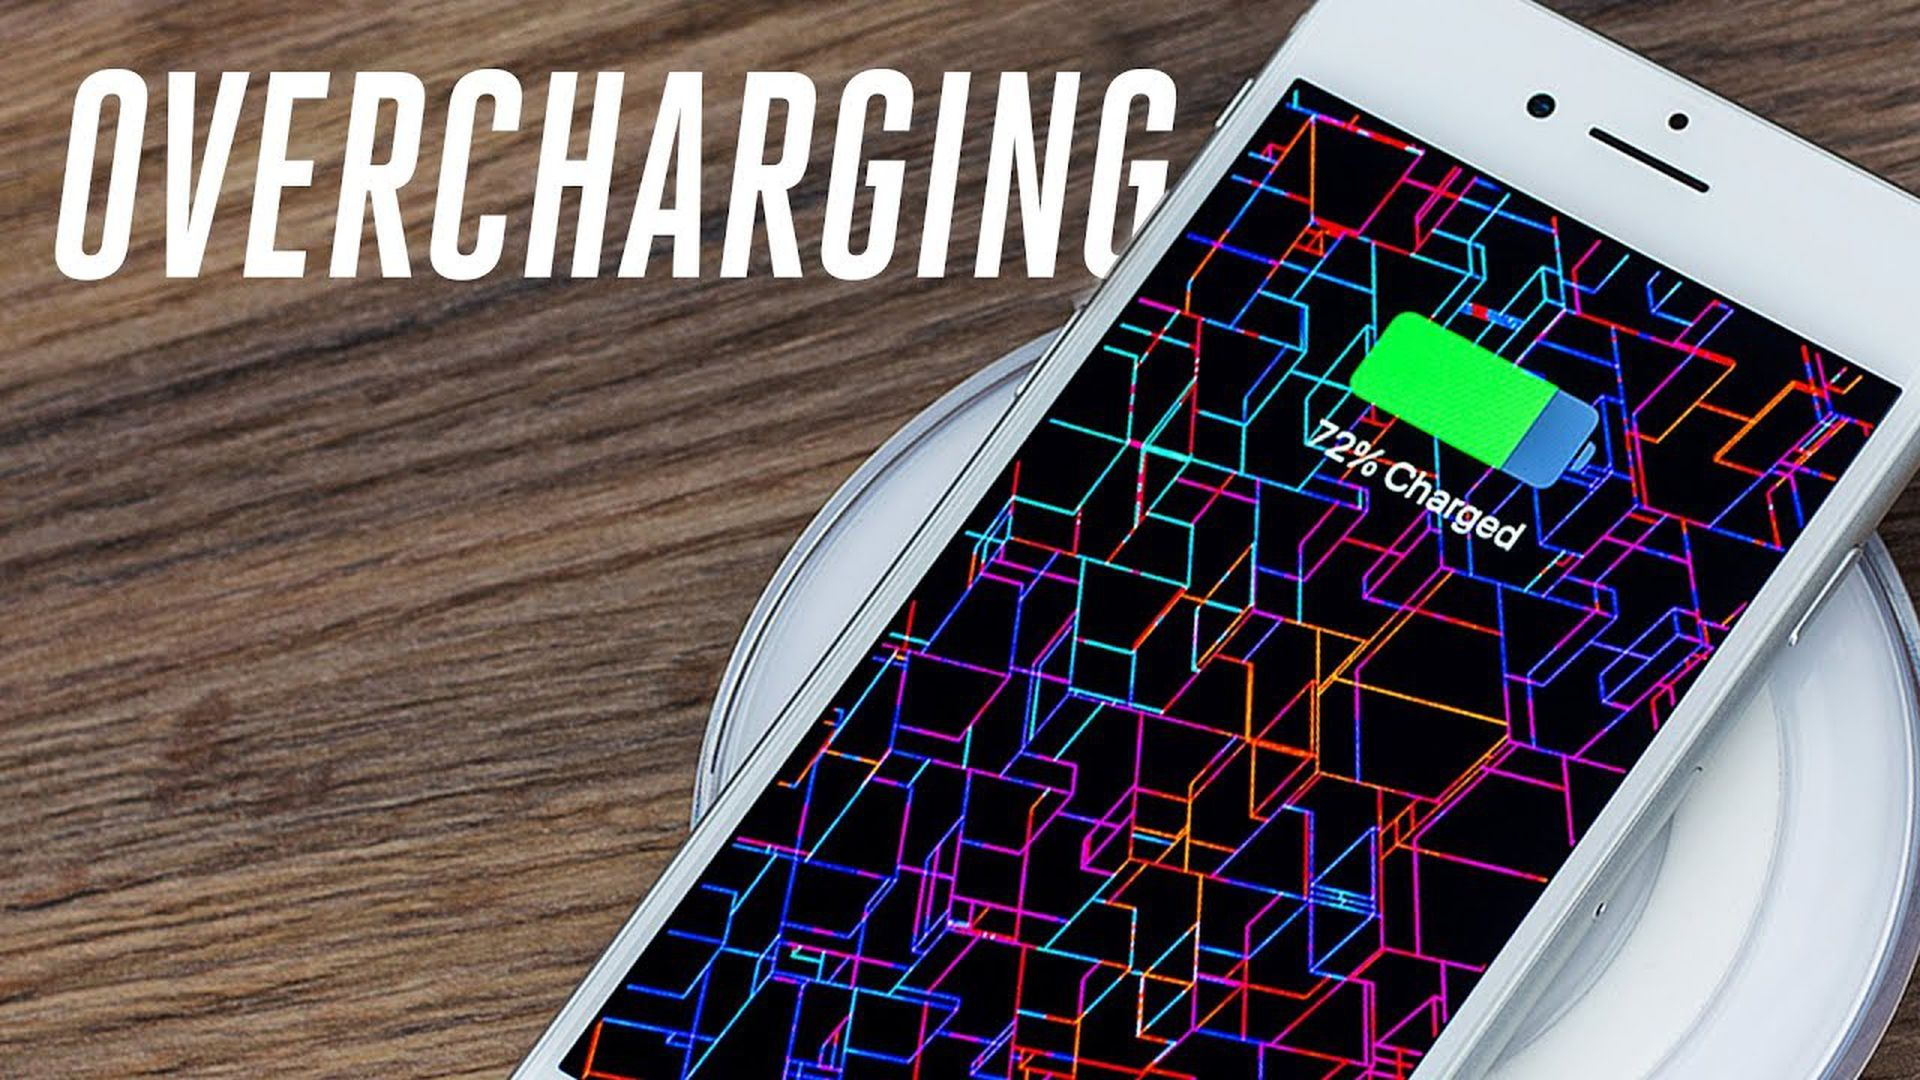 How To Charge Your Phone The Verge Circuit Above Is A Simple Battery